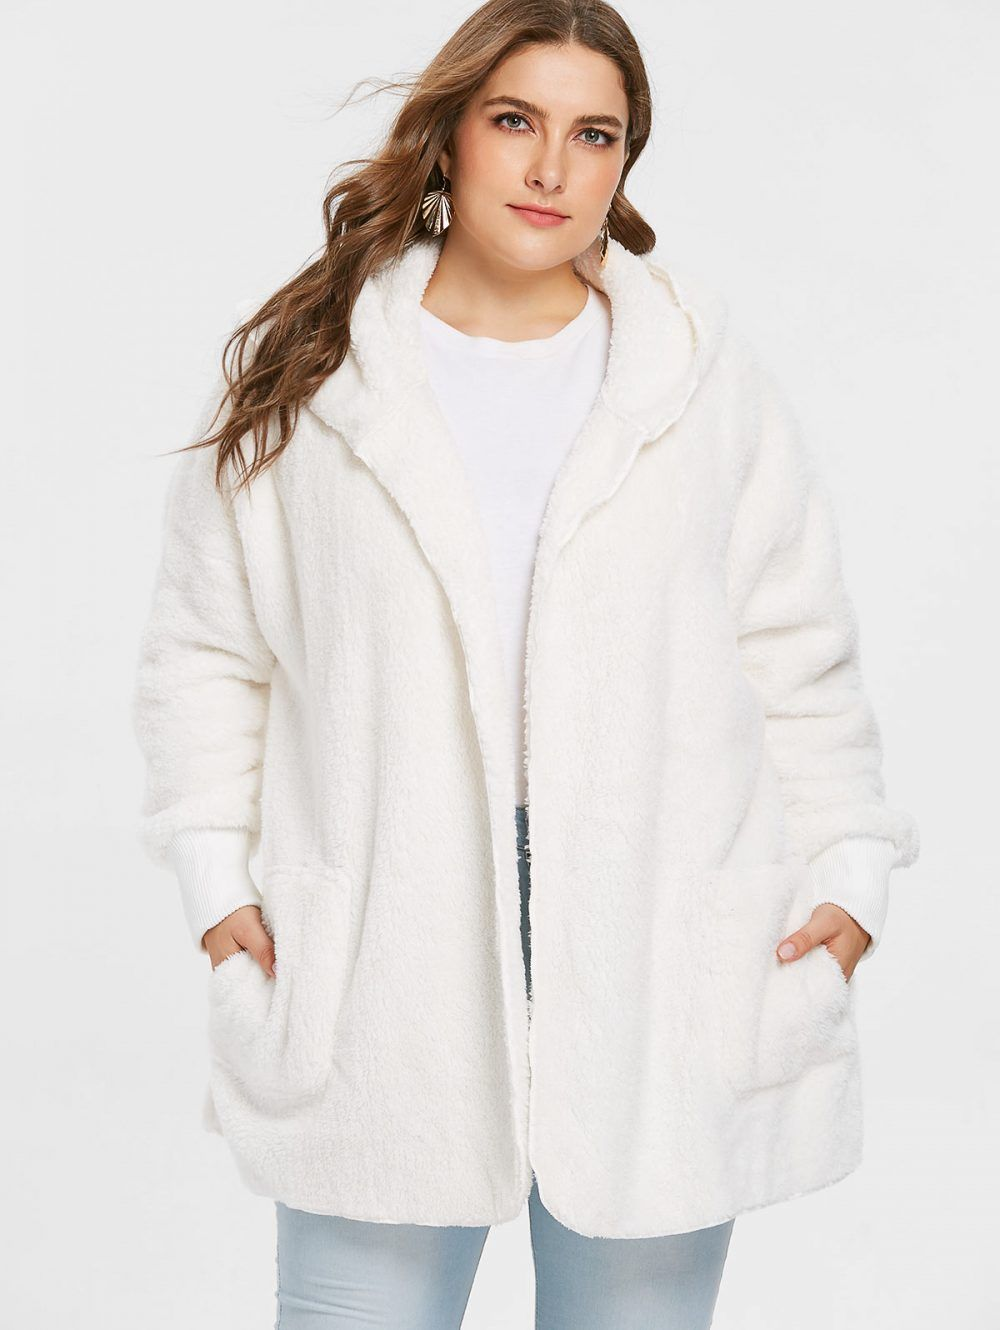 78dfb20789241 Women Fashion Women Plus Size Collarless Soft Faux Fur Coat Casual Solid  Loose Fit Jacket Coat